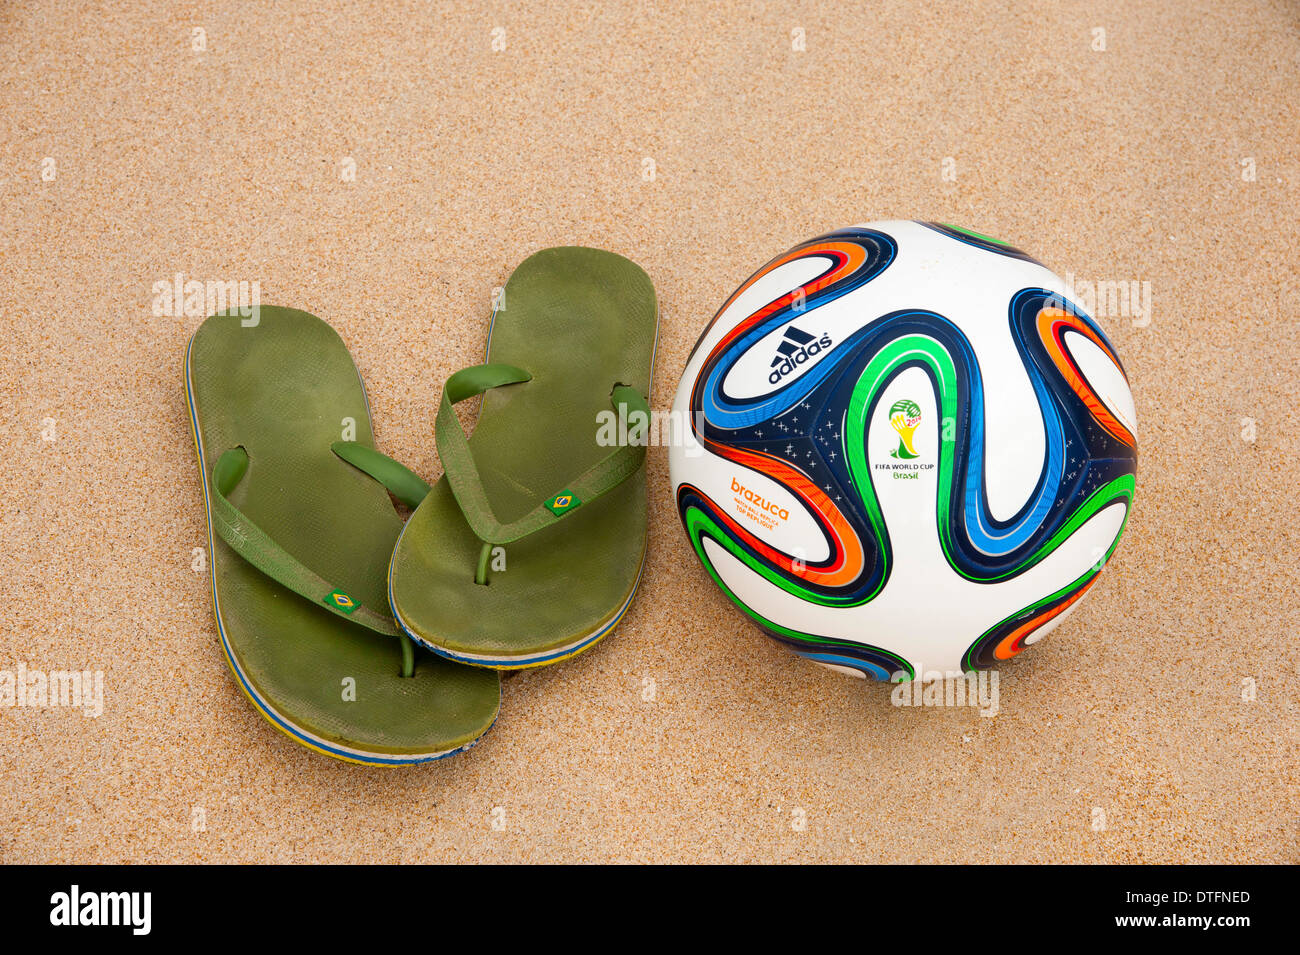 Brazuca (replica), official match ball of the FIFA World Cup 2014 in Brazil in the sand next to worn out green flip-flops - Stock Image